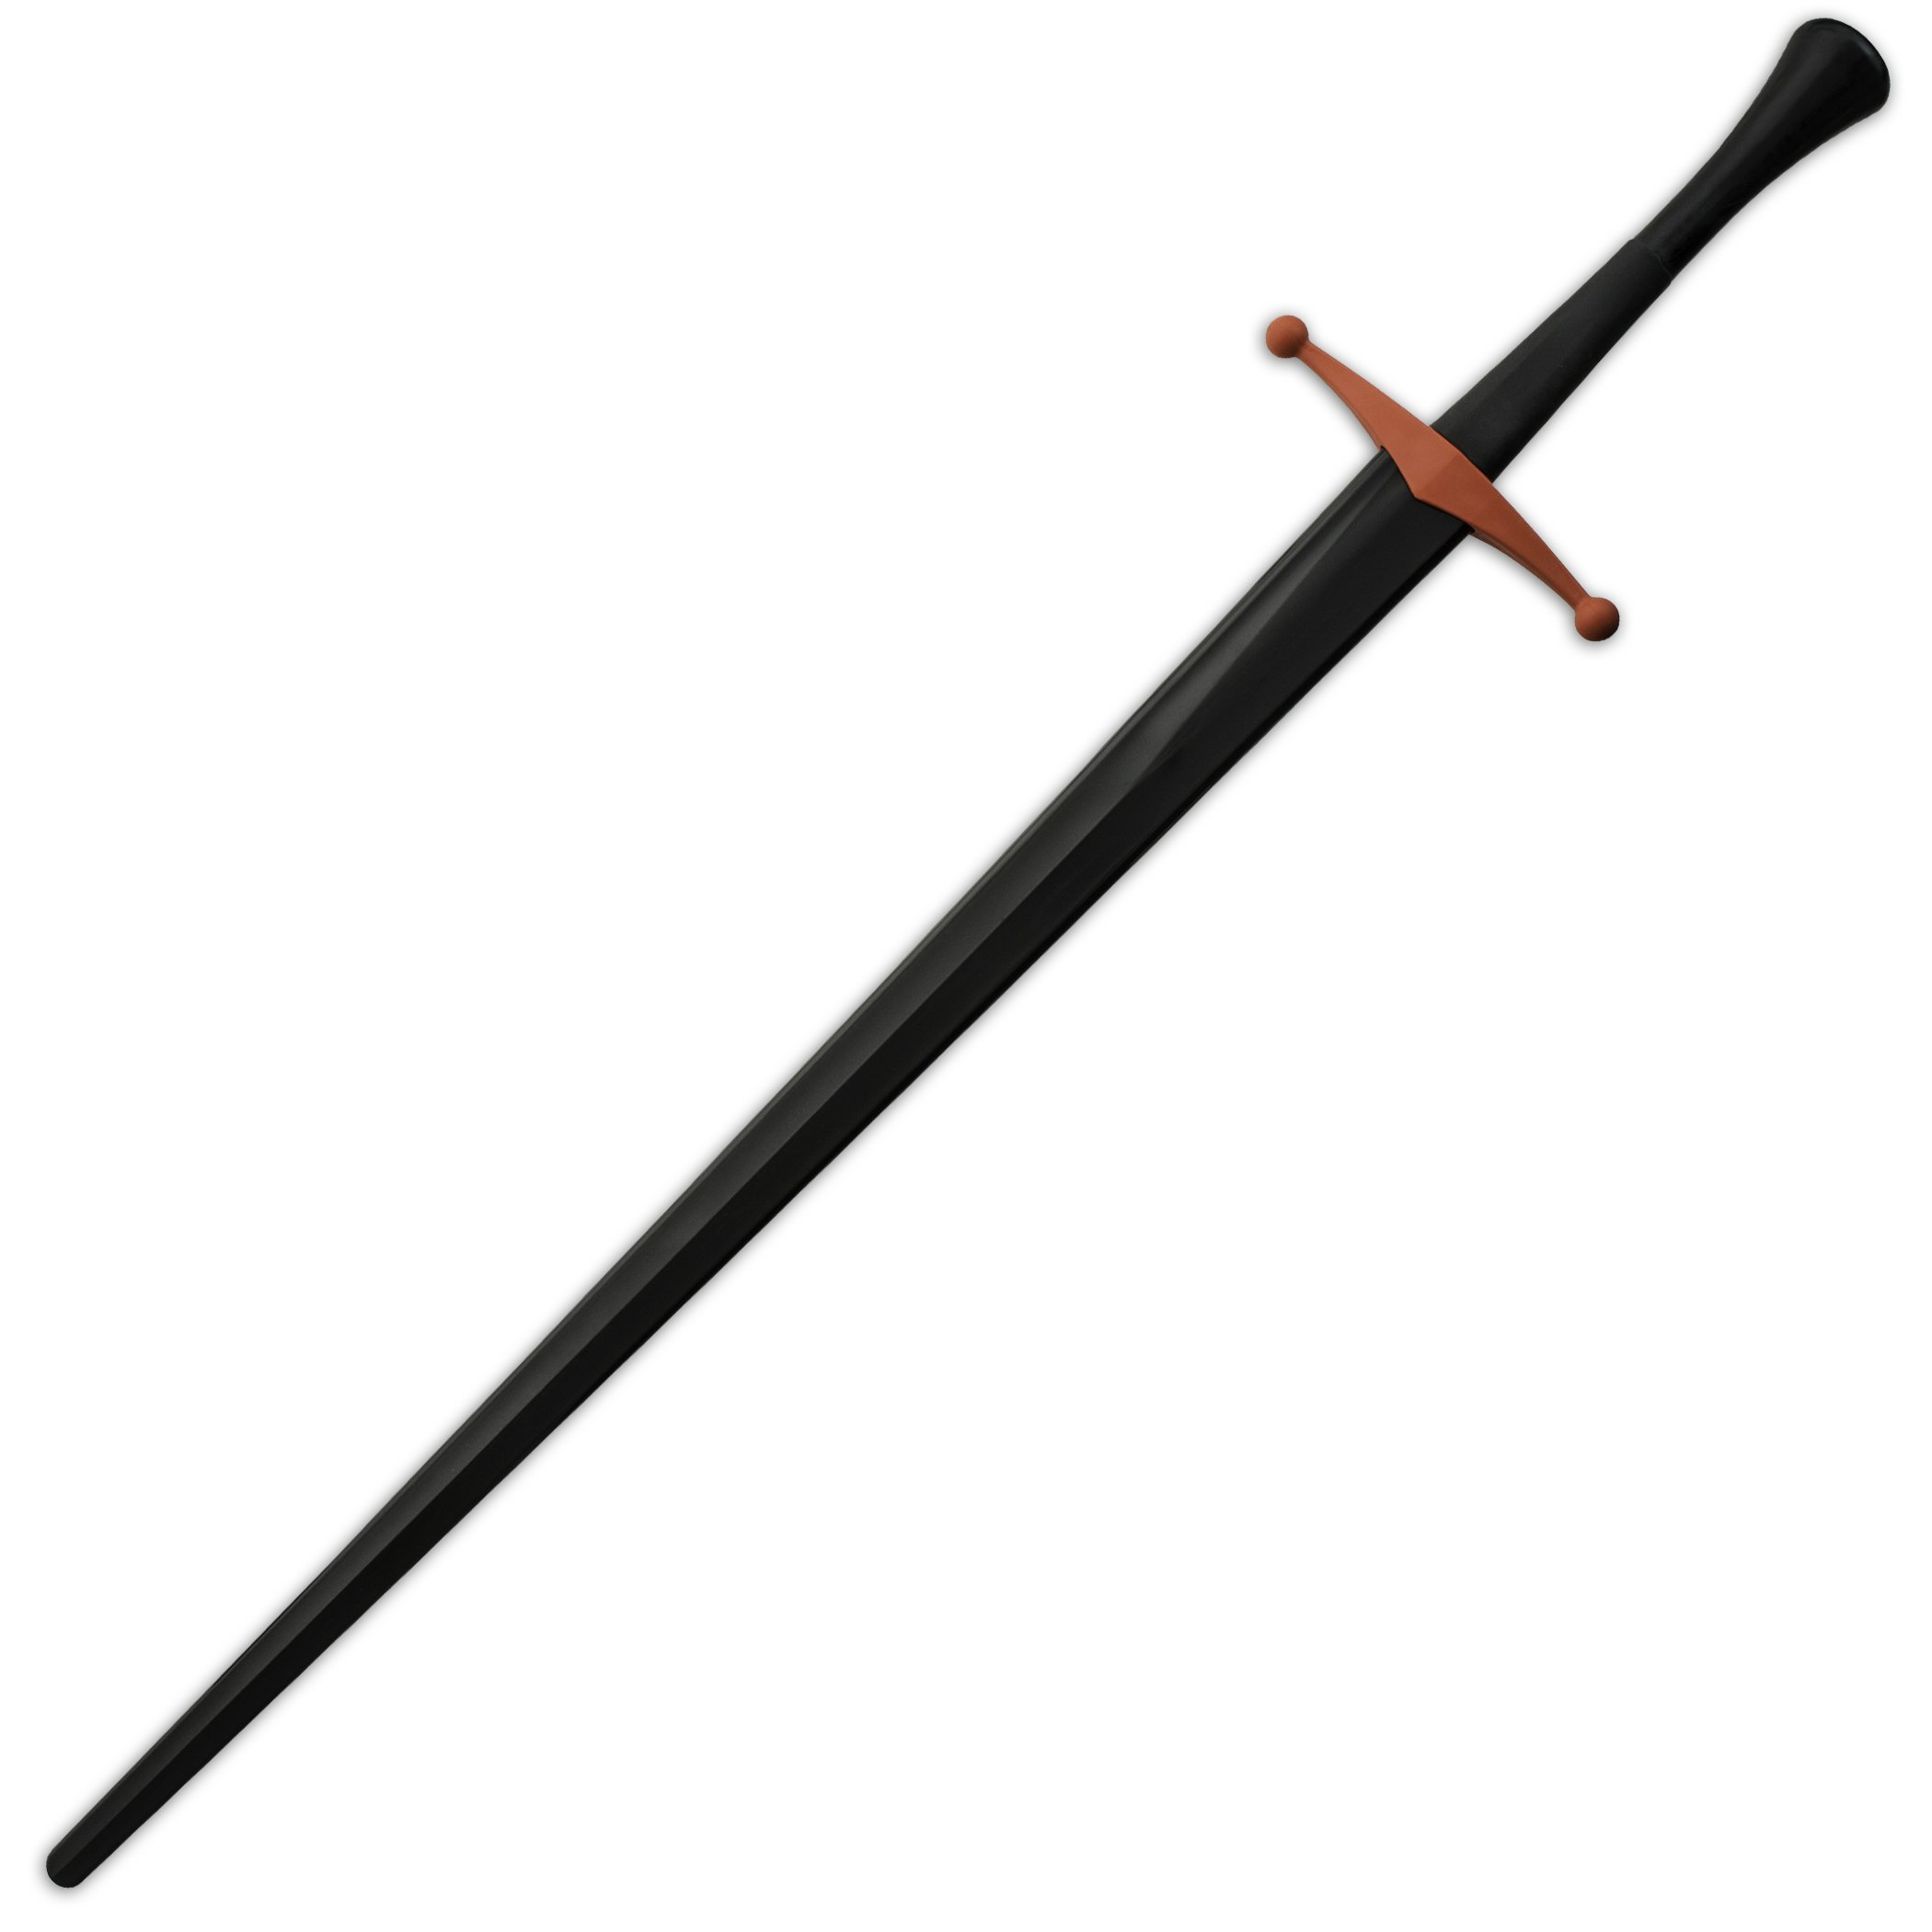 Red Dragon Armoury Synthetic Bastard Sparring Sword - Black Blade with Red Guard PR9441 Synthetic Bastard Sparring Sword - Black Blade with Red Guard